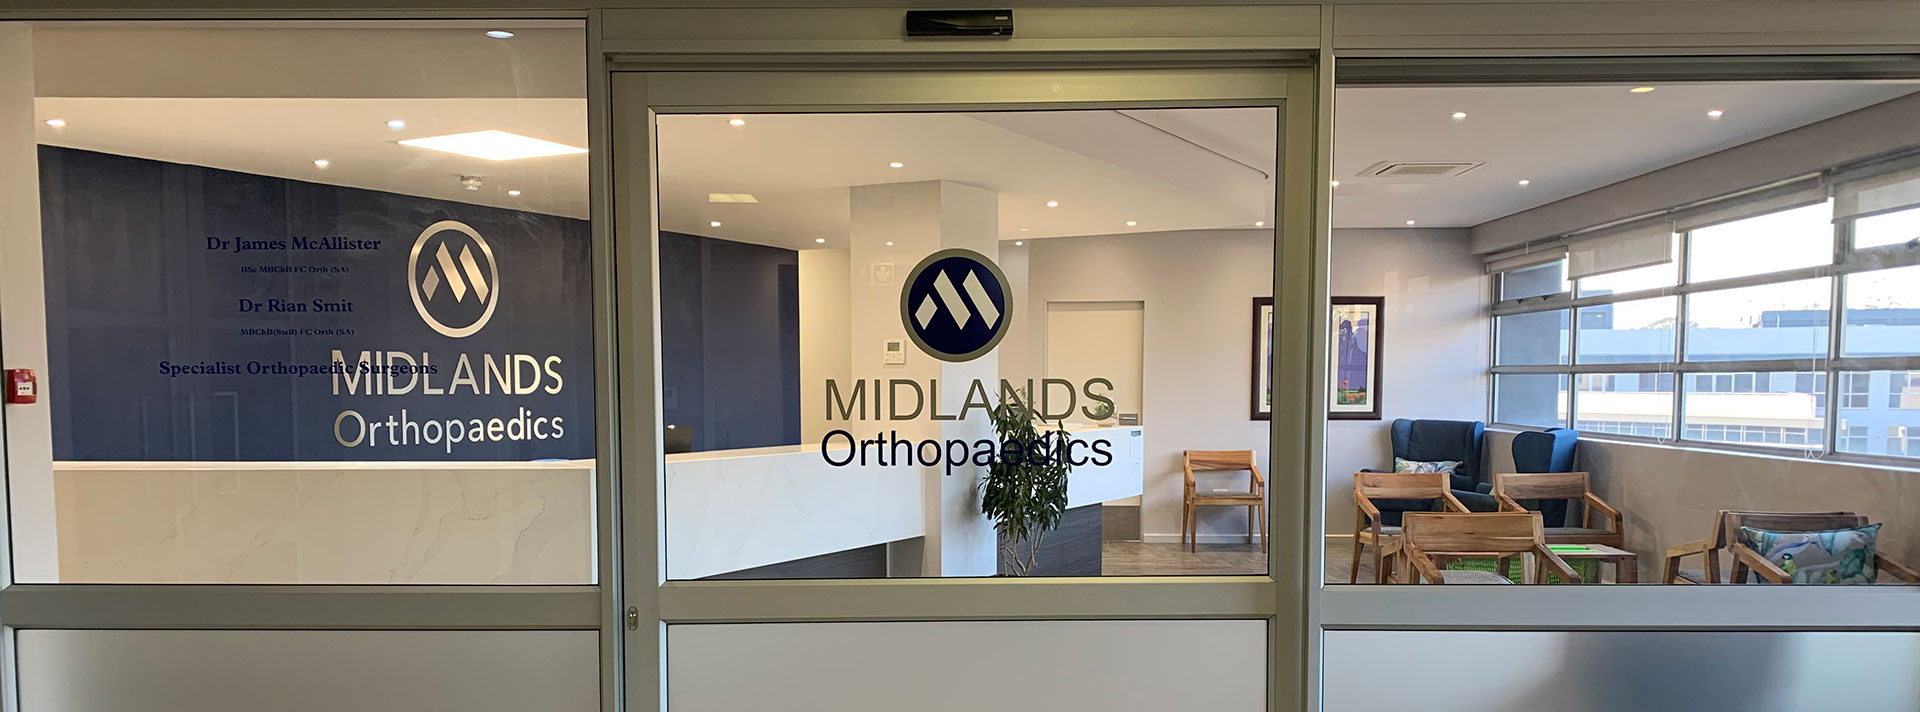 Midlands Orthopeadics as seen from outside the front door.